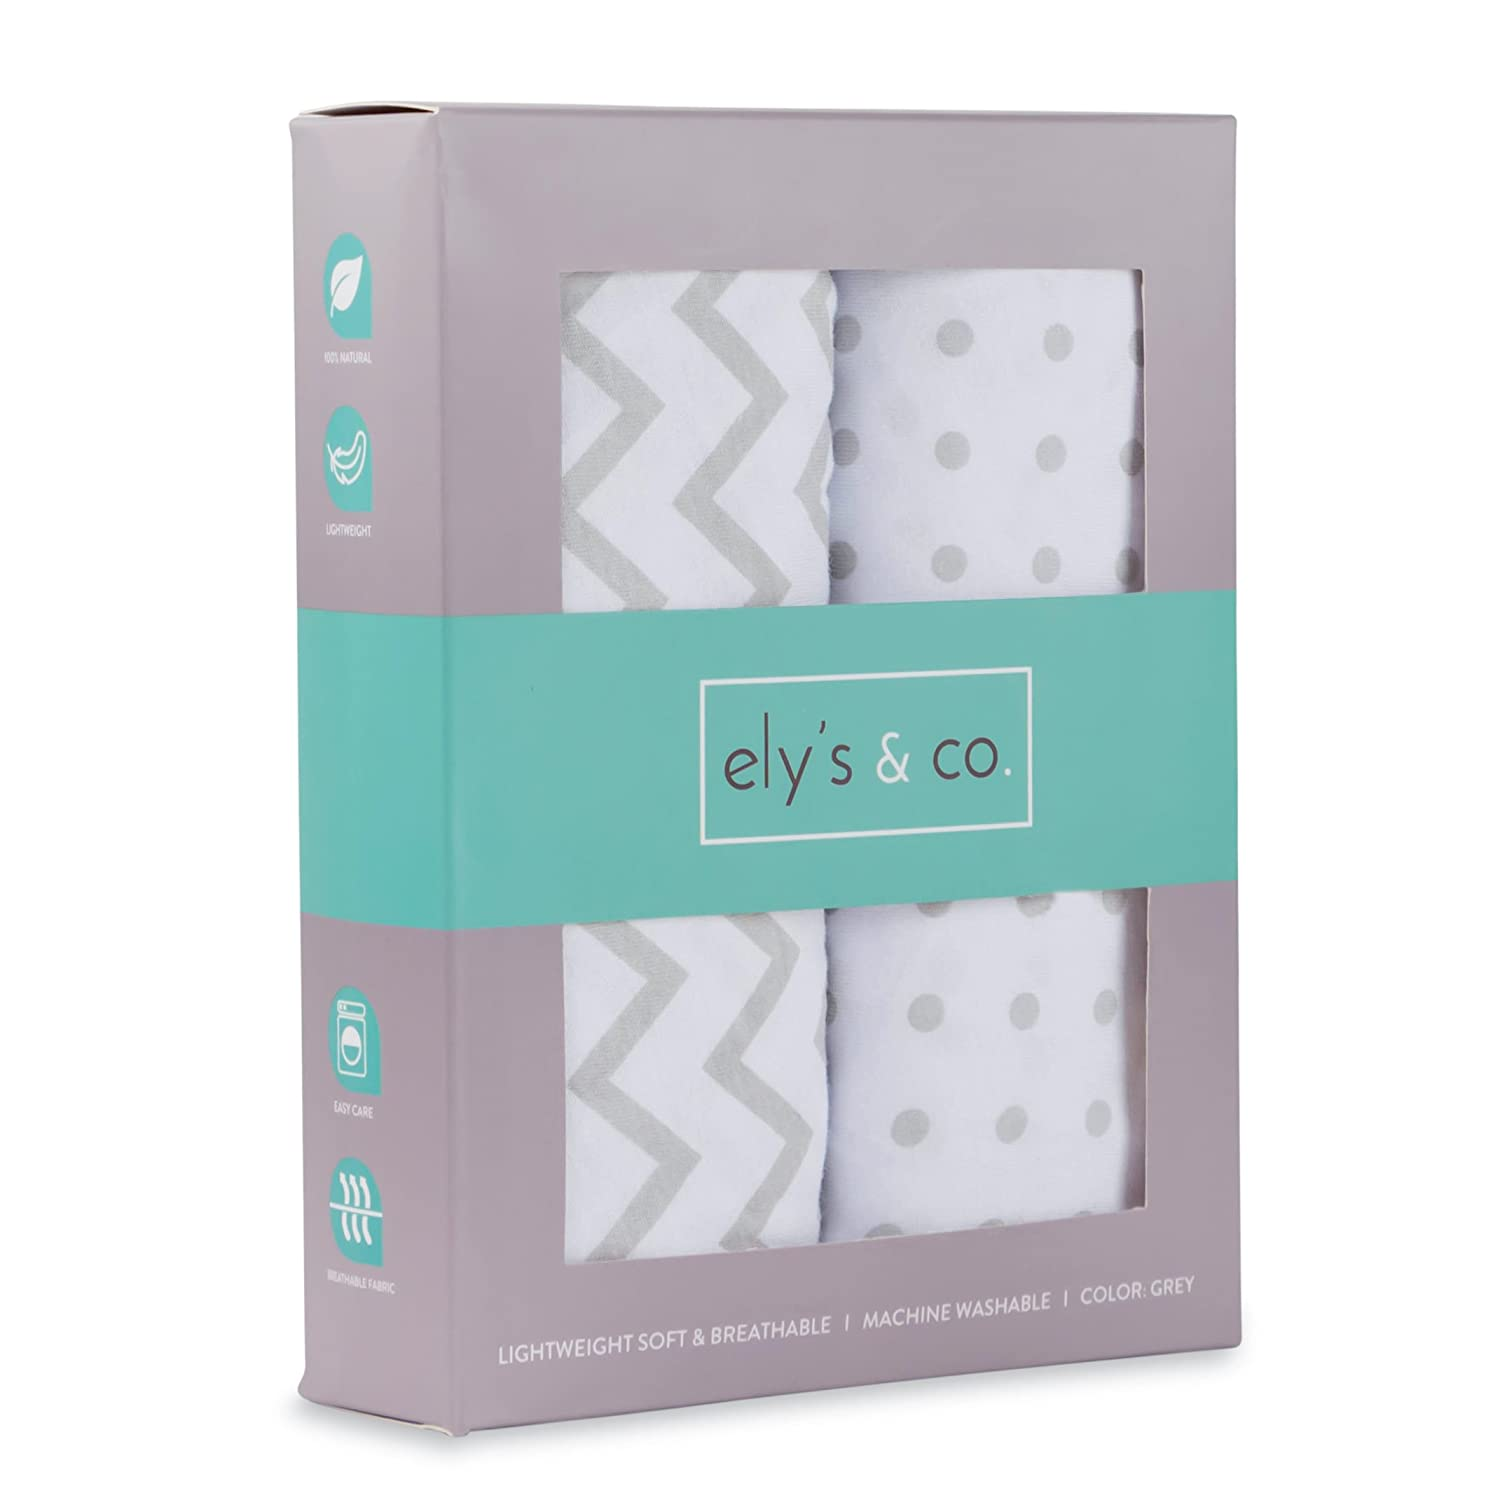 Crib Sheet Set 2 Pack 100% Jersey Cotton for Baby Girl and Baby Boy by Ely's & Co. - Grey Chevron and Polka Dot by Ely's & Co. Ely's & Co